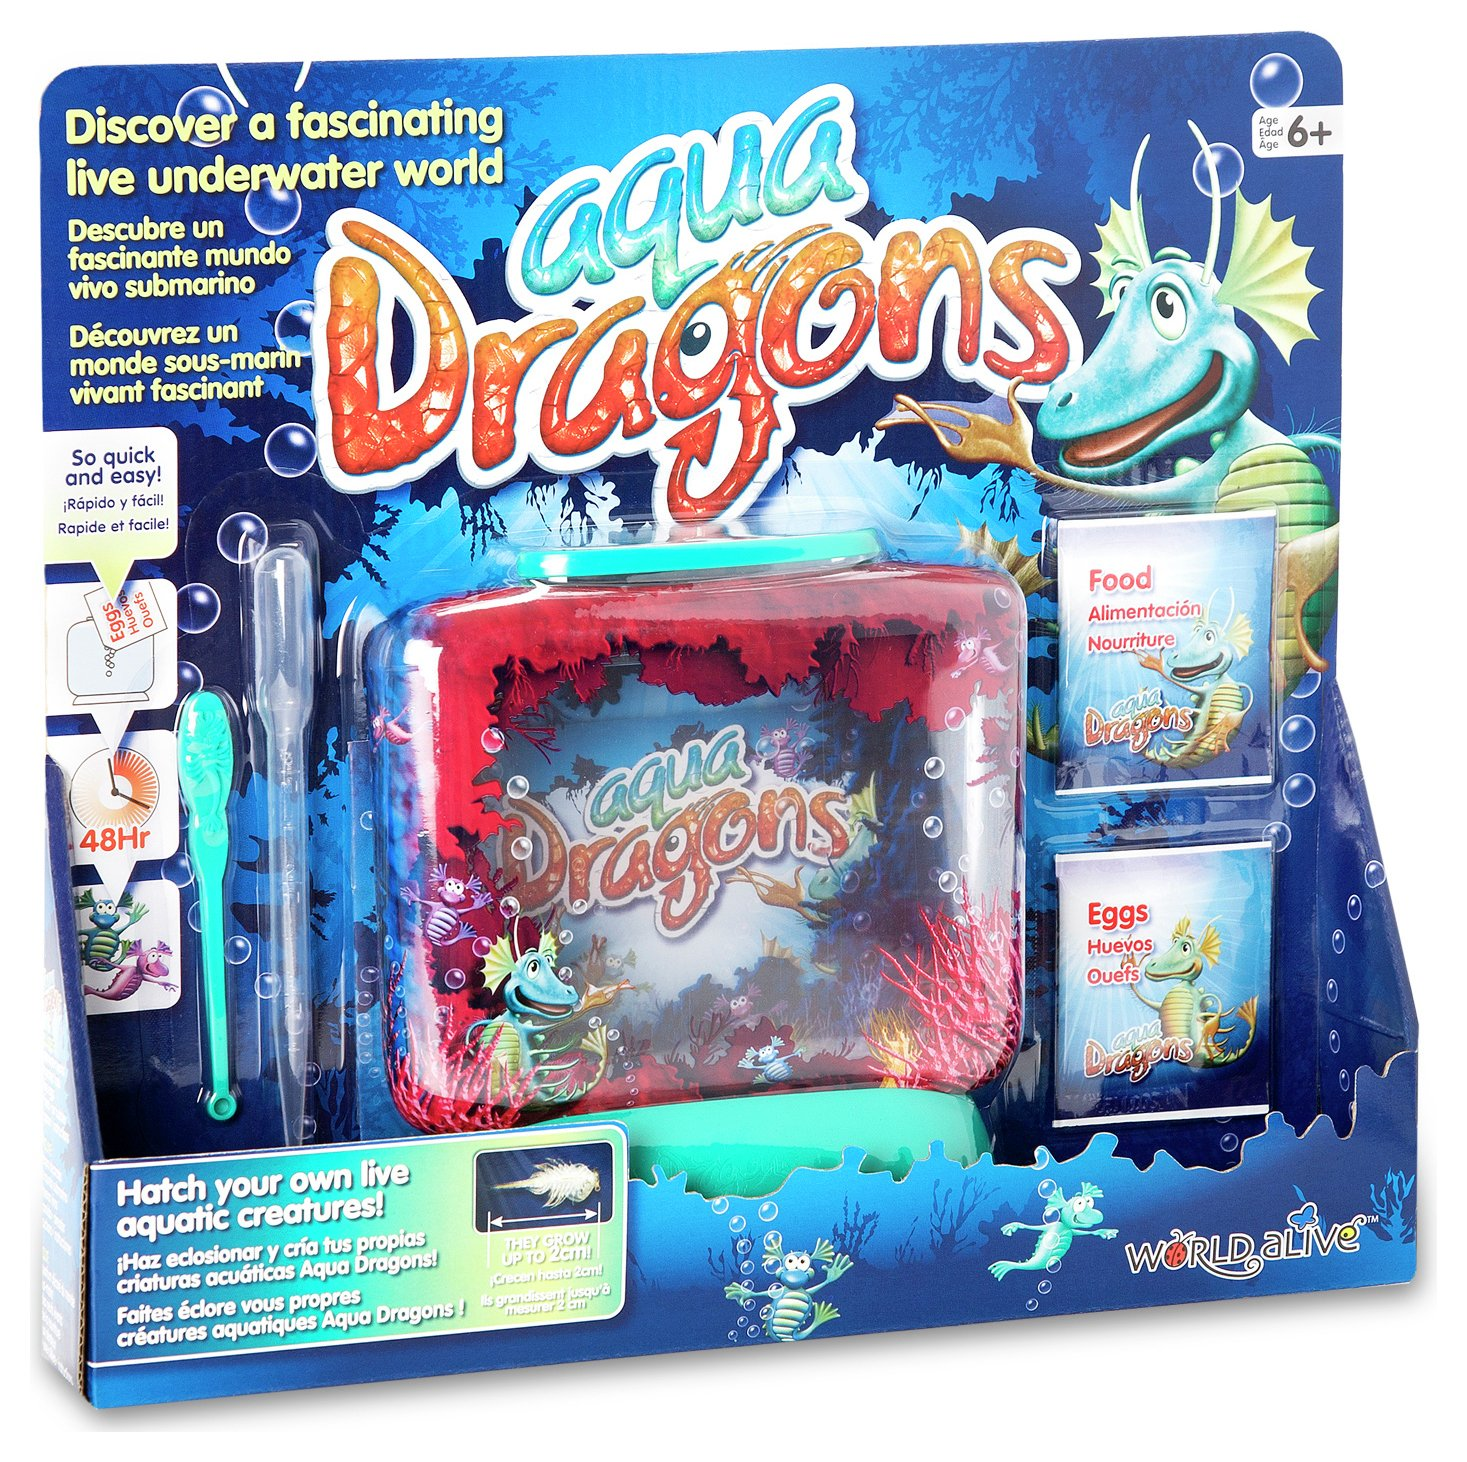 Image of Aqua Dragons Underwater World.